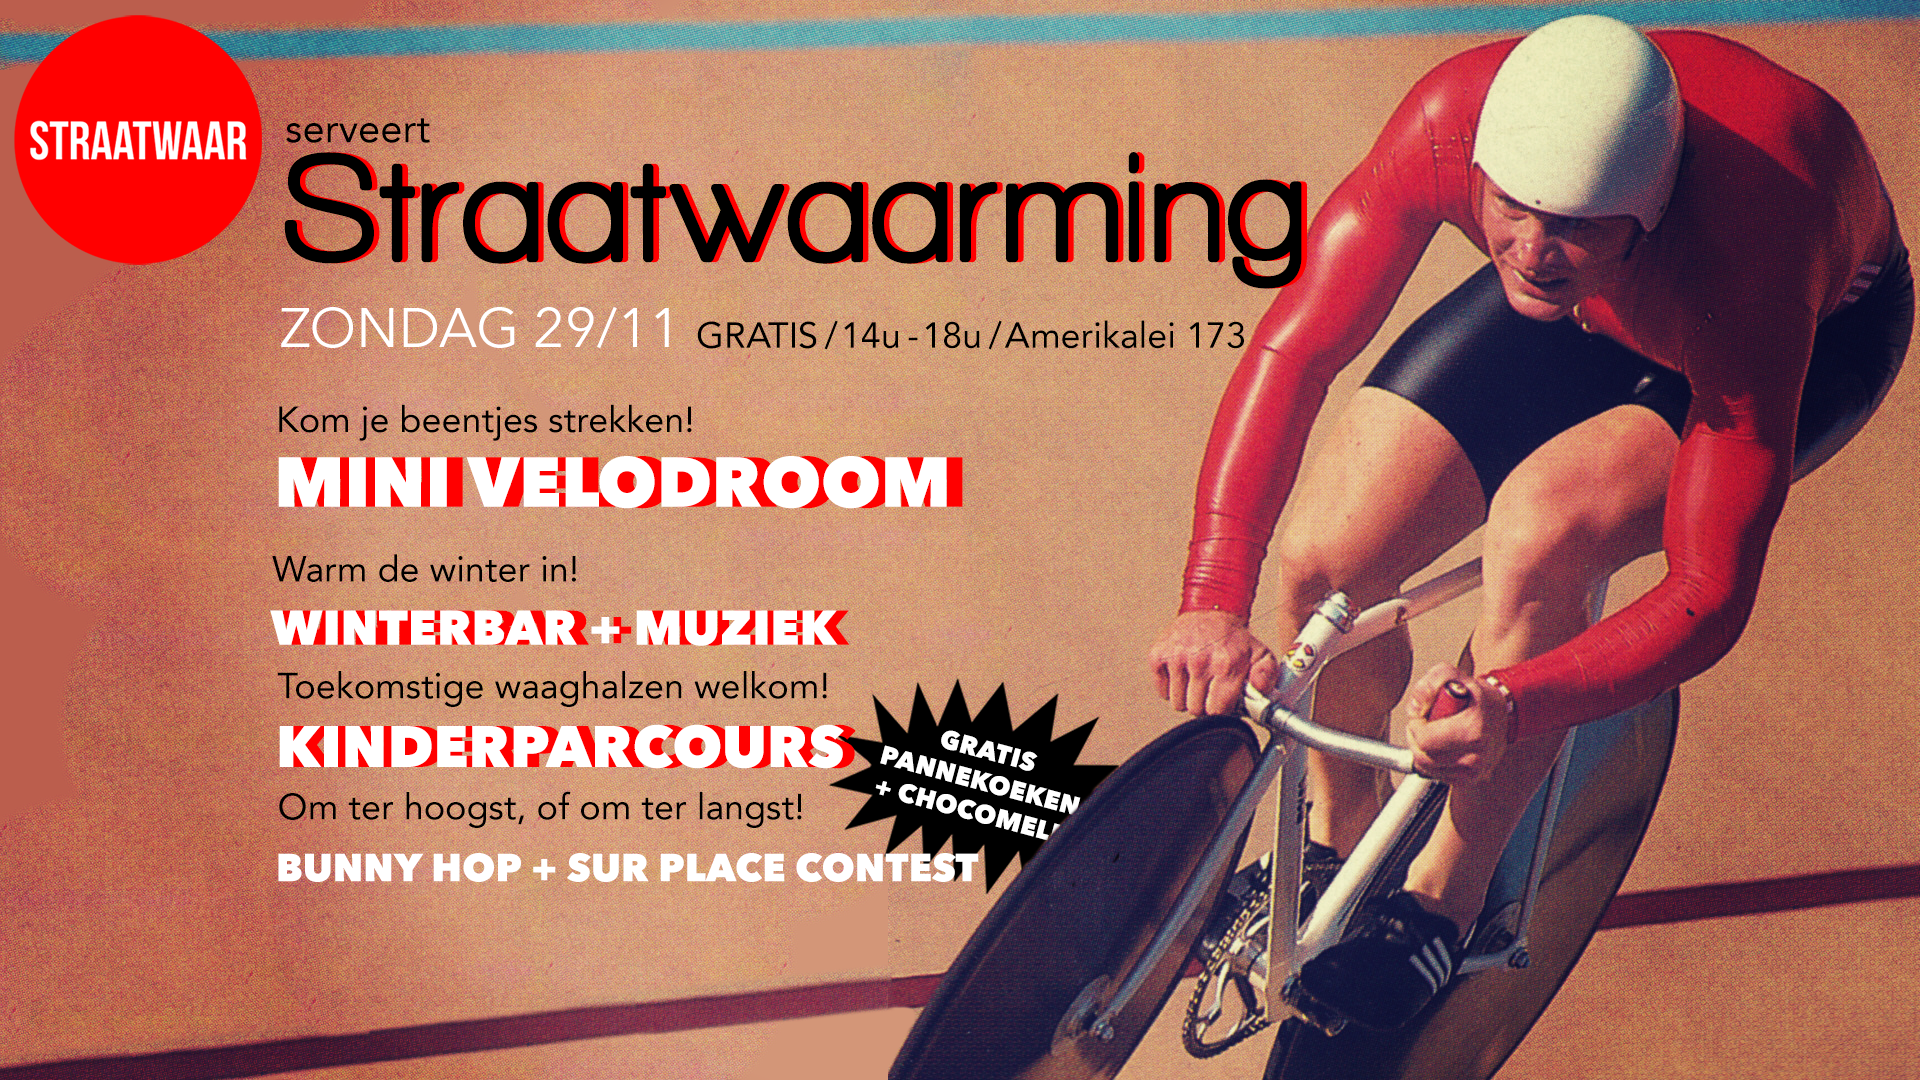 Straatwaarming 2015